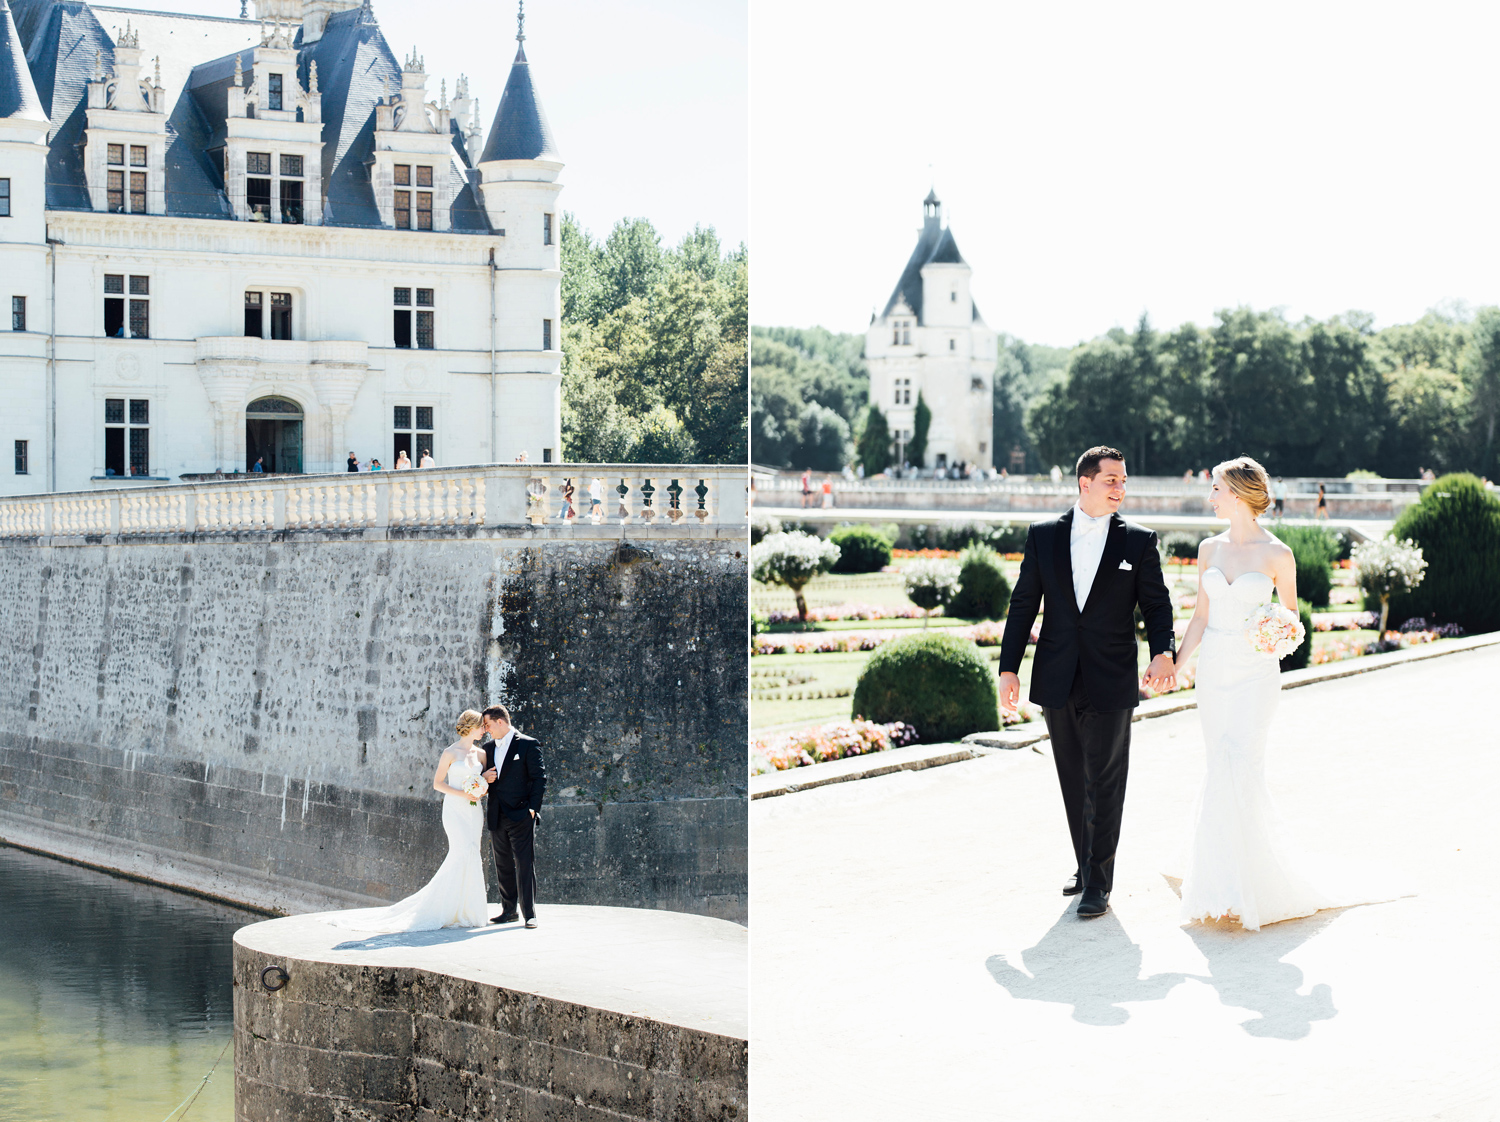 018-katie-mitchell-french-chateau-d-artigny-chateau-de-chenonceau-wedding-photography.jpg